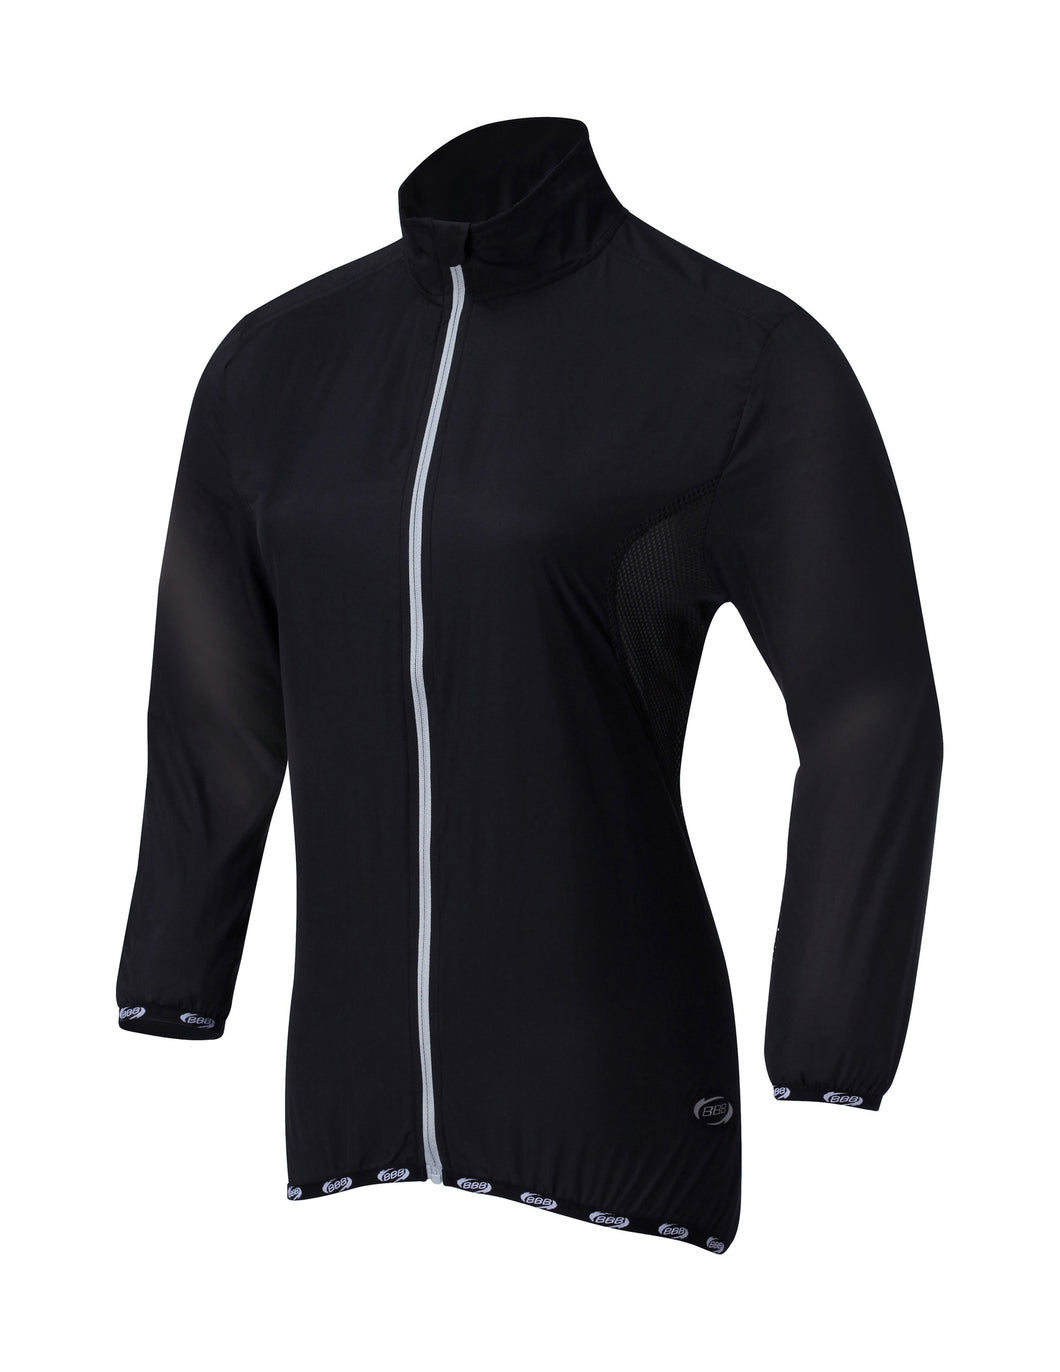 MistralShield Womens Wind Jacket Black (L)